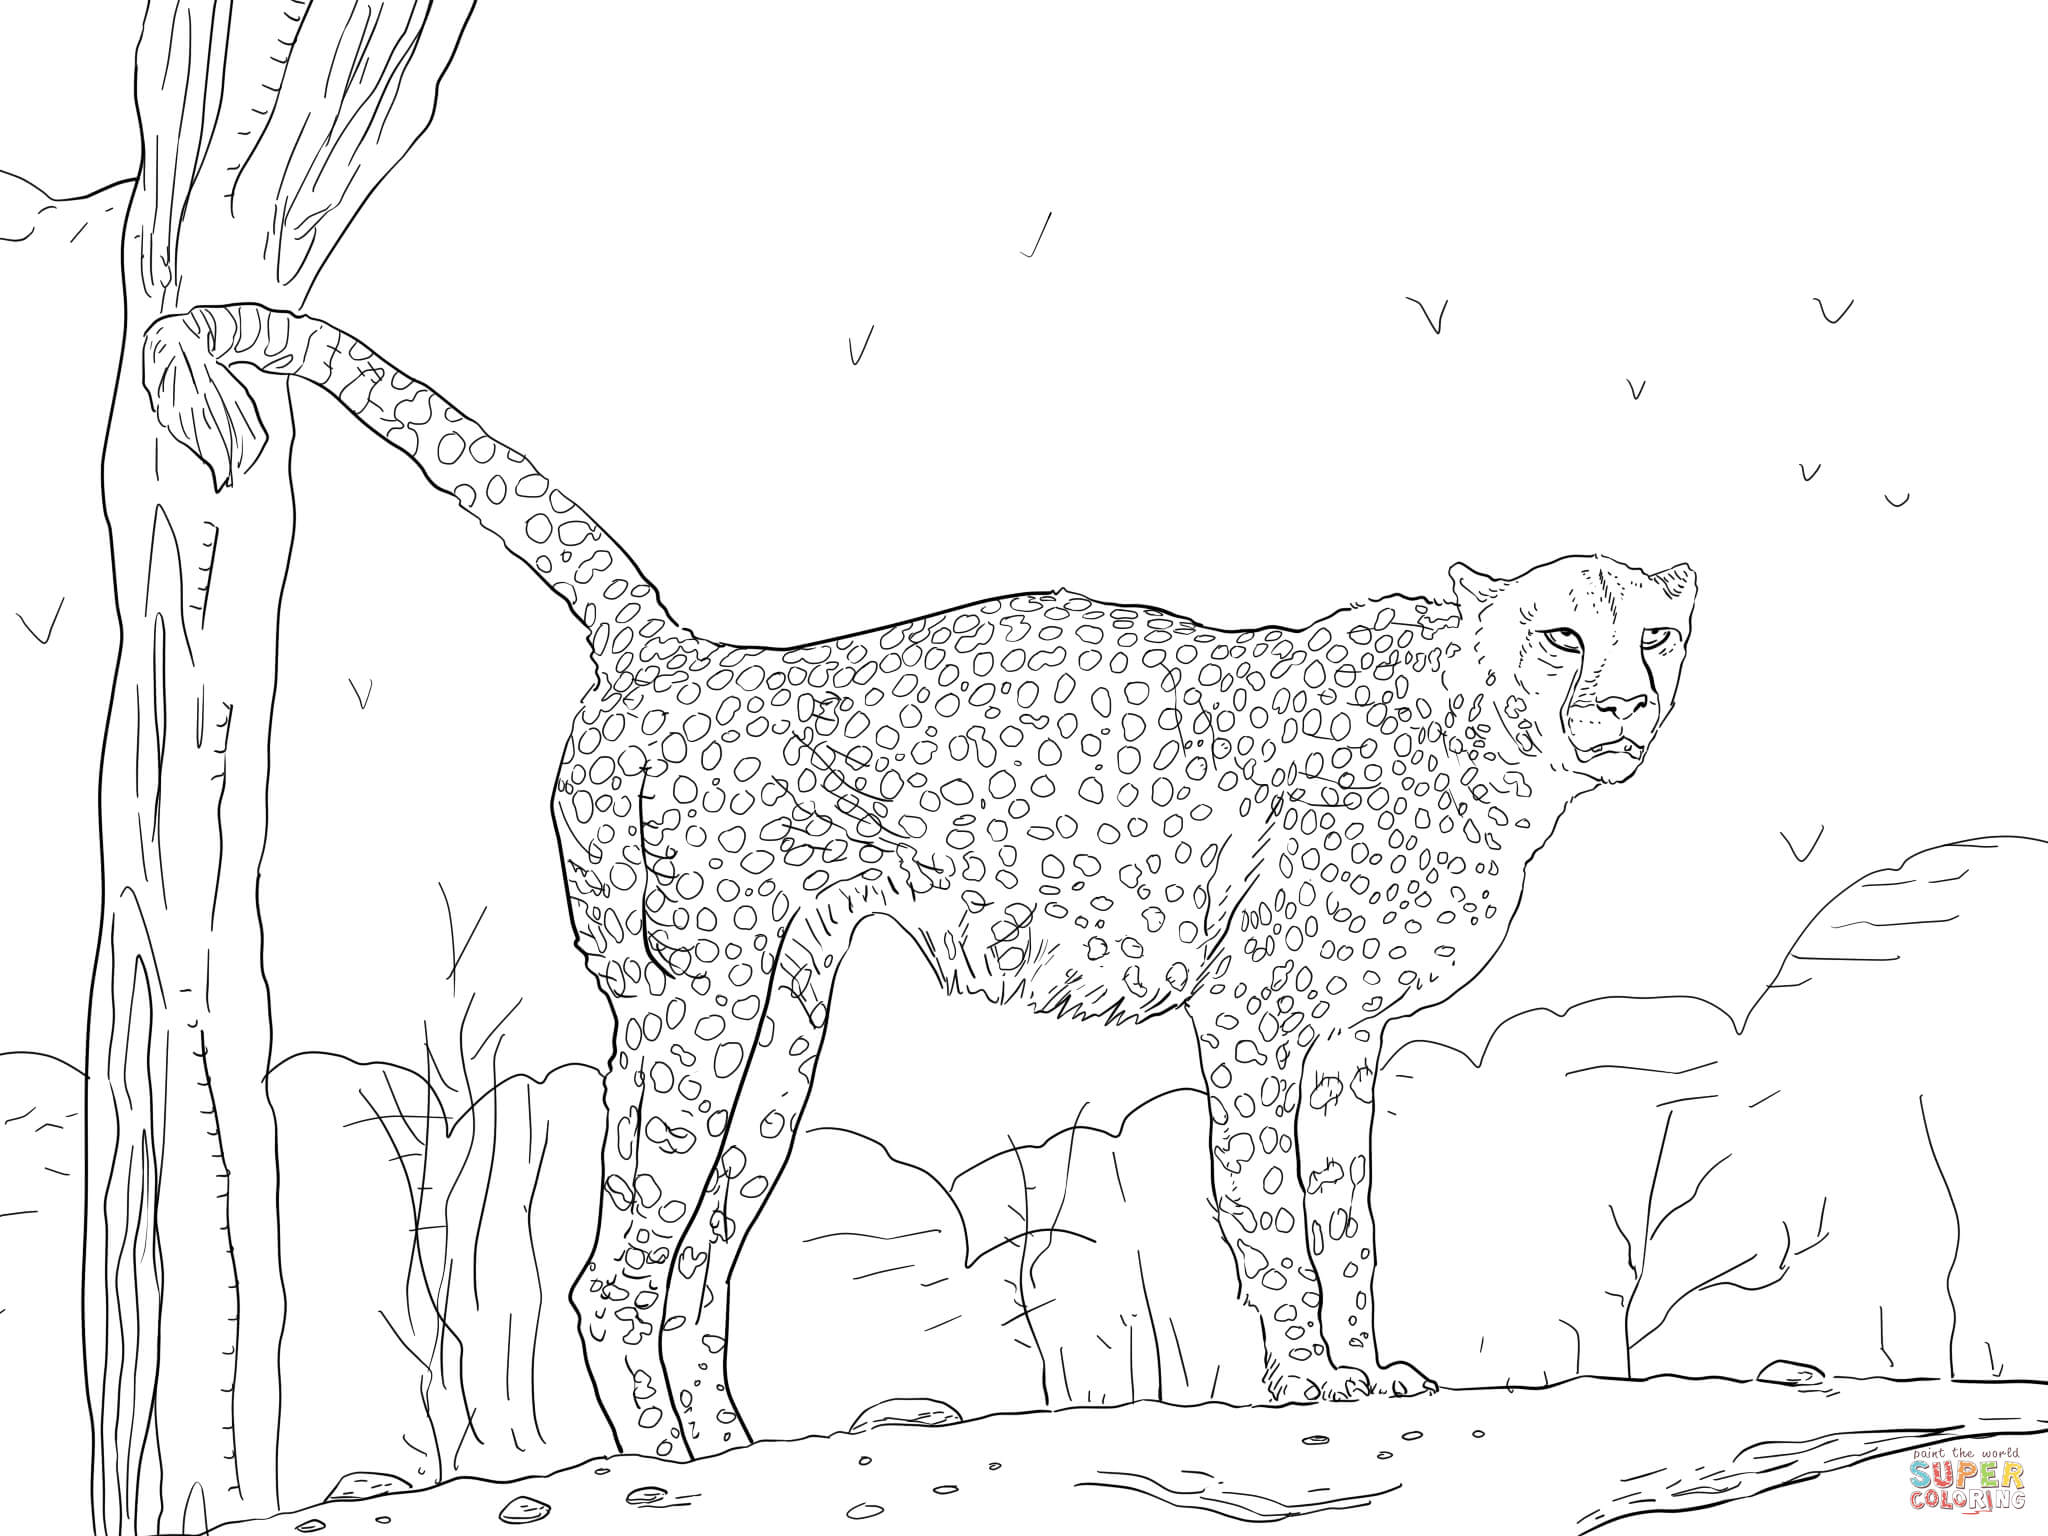 coloring pictures of cheetahs free printable cheetah coloring pages cheetah coloring pictures cheetahs coloring of